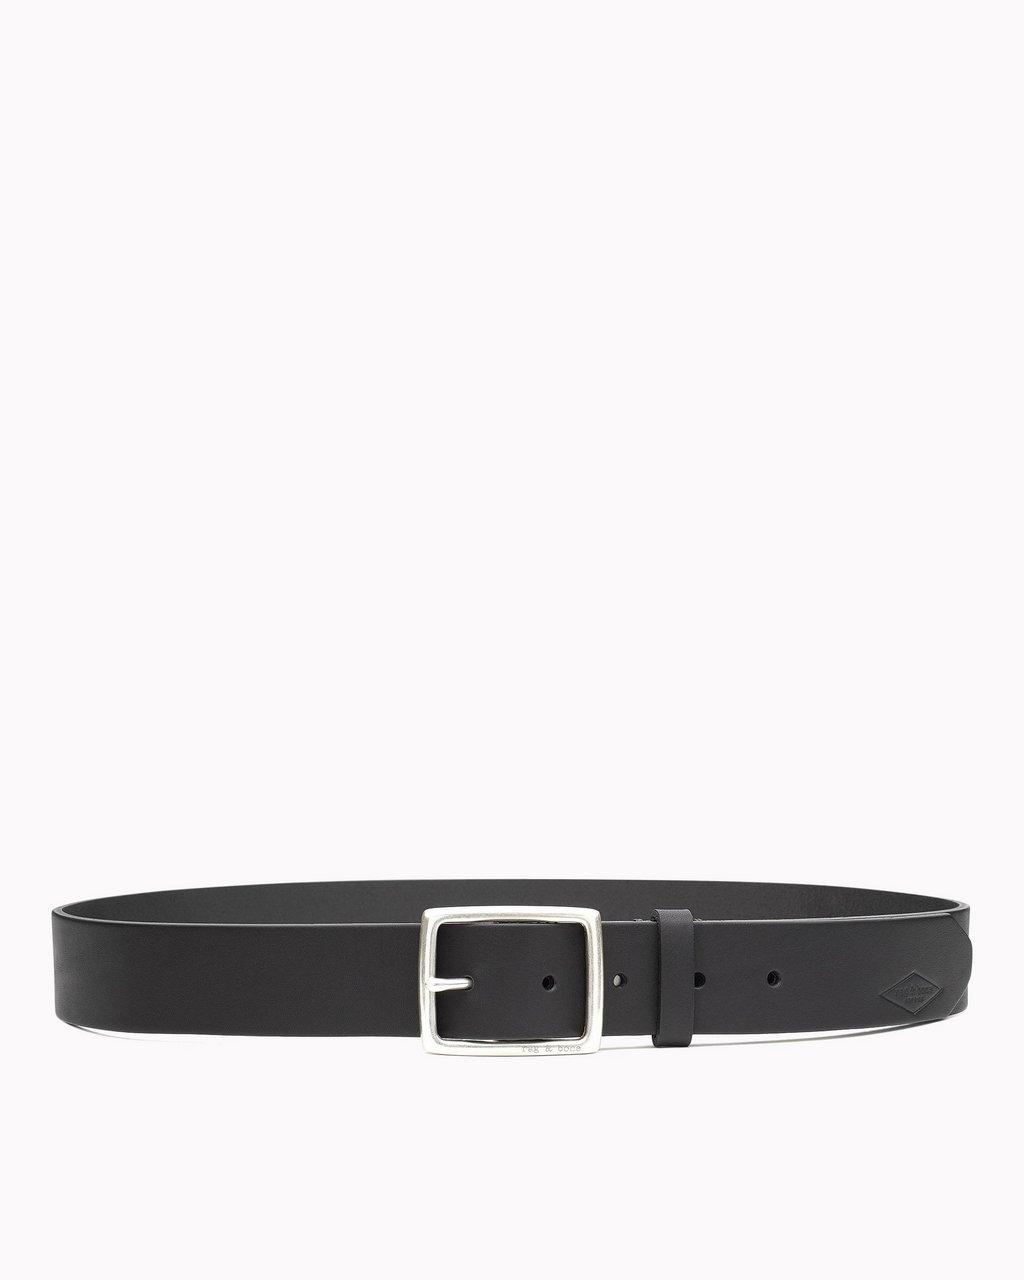 RUGGED BELT BRASS